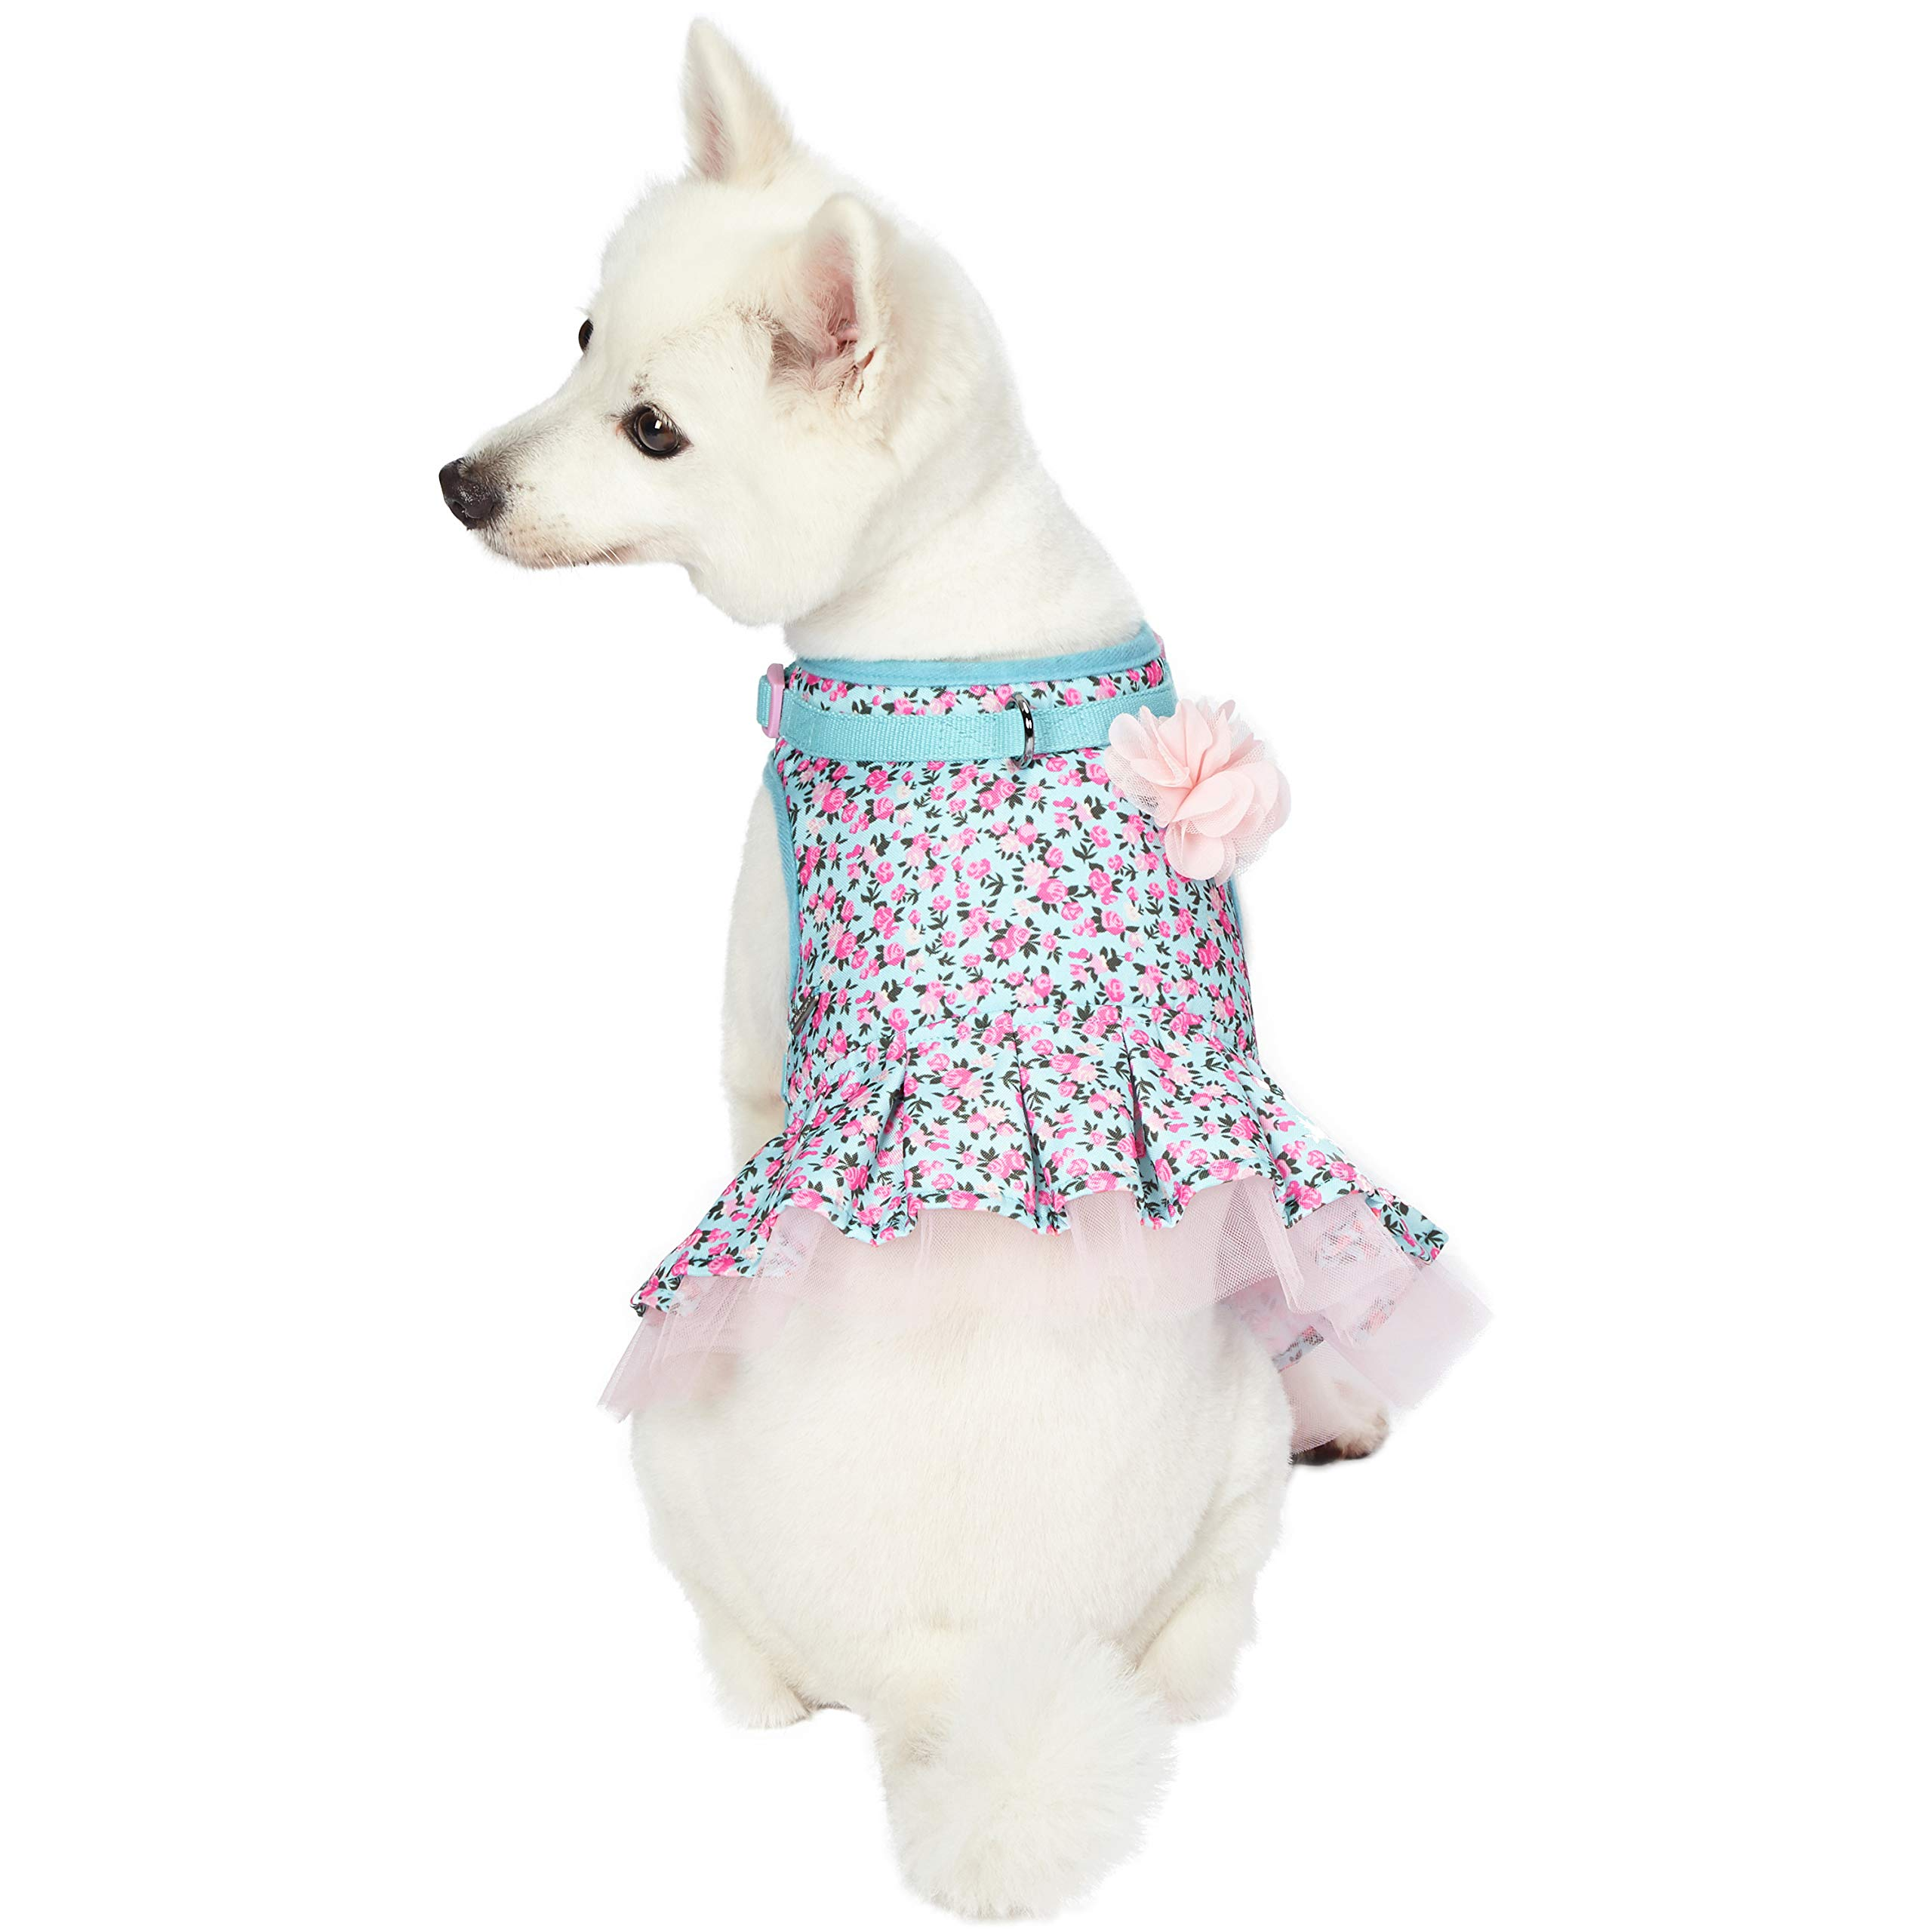 Blueberry Pet 5 Patterns Soft & Comfy Spring Made Well Cute Floral No Pull Mesh Dog Costume Harness Dress in Light Blue, Chest Girth 19''-21'', Small, Adjustable Harnesses for Dogs